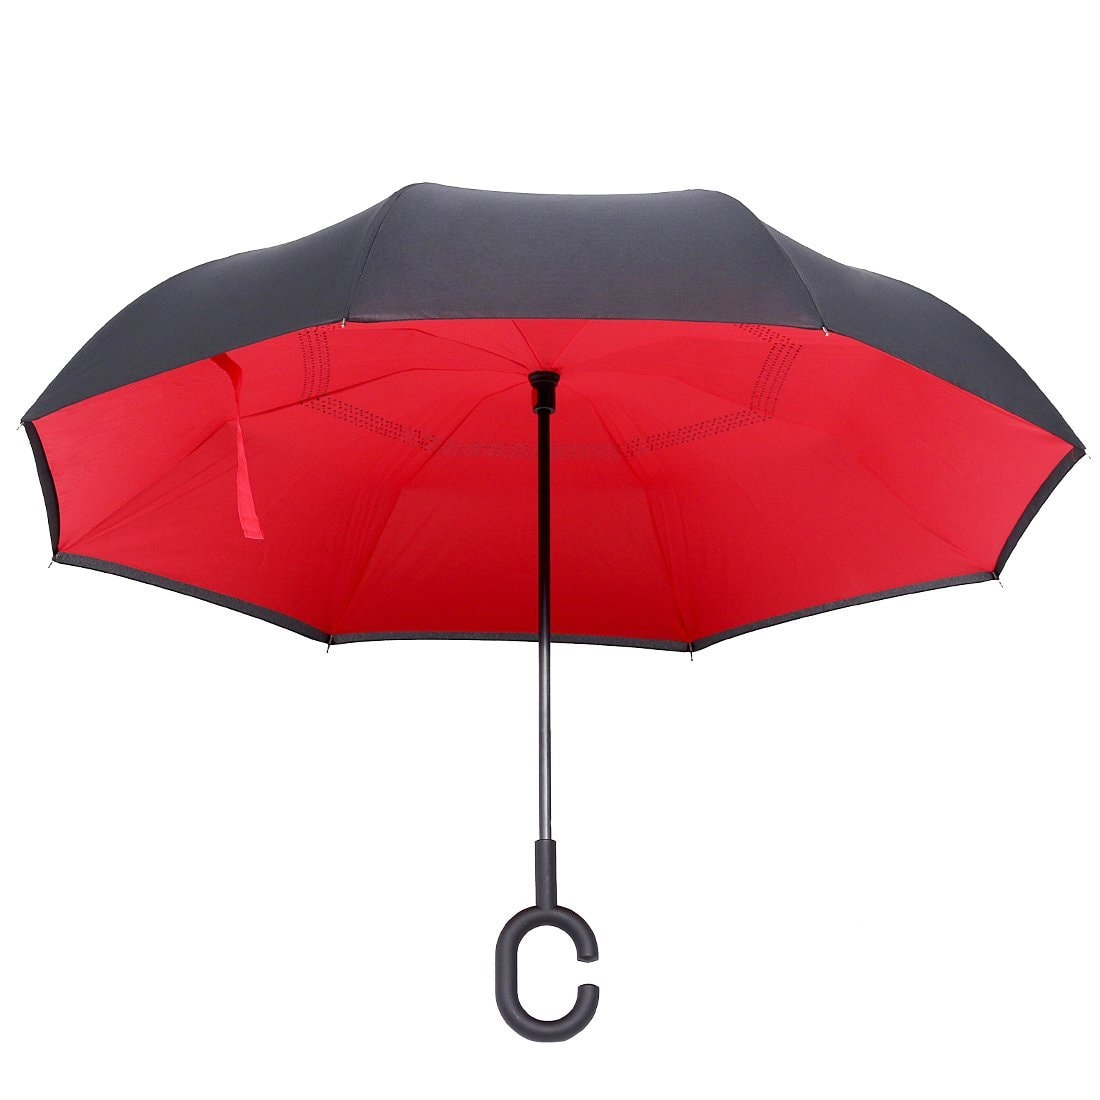 SPAZIES Double Layer Reverse Umbrella For Car And Outdoor , Windproof UV Protection Big Straight Umbrella With C-Shaped Handle And Carrying Bag